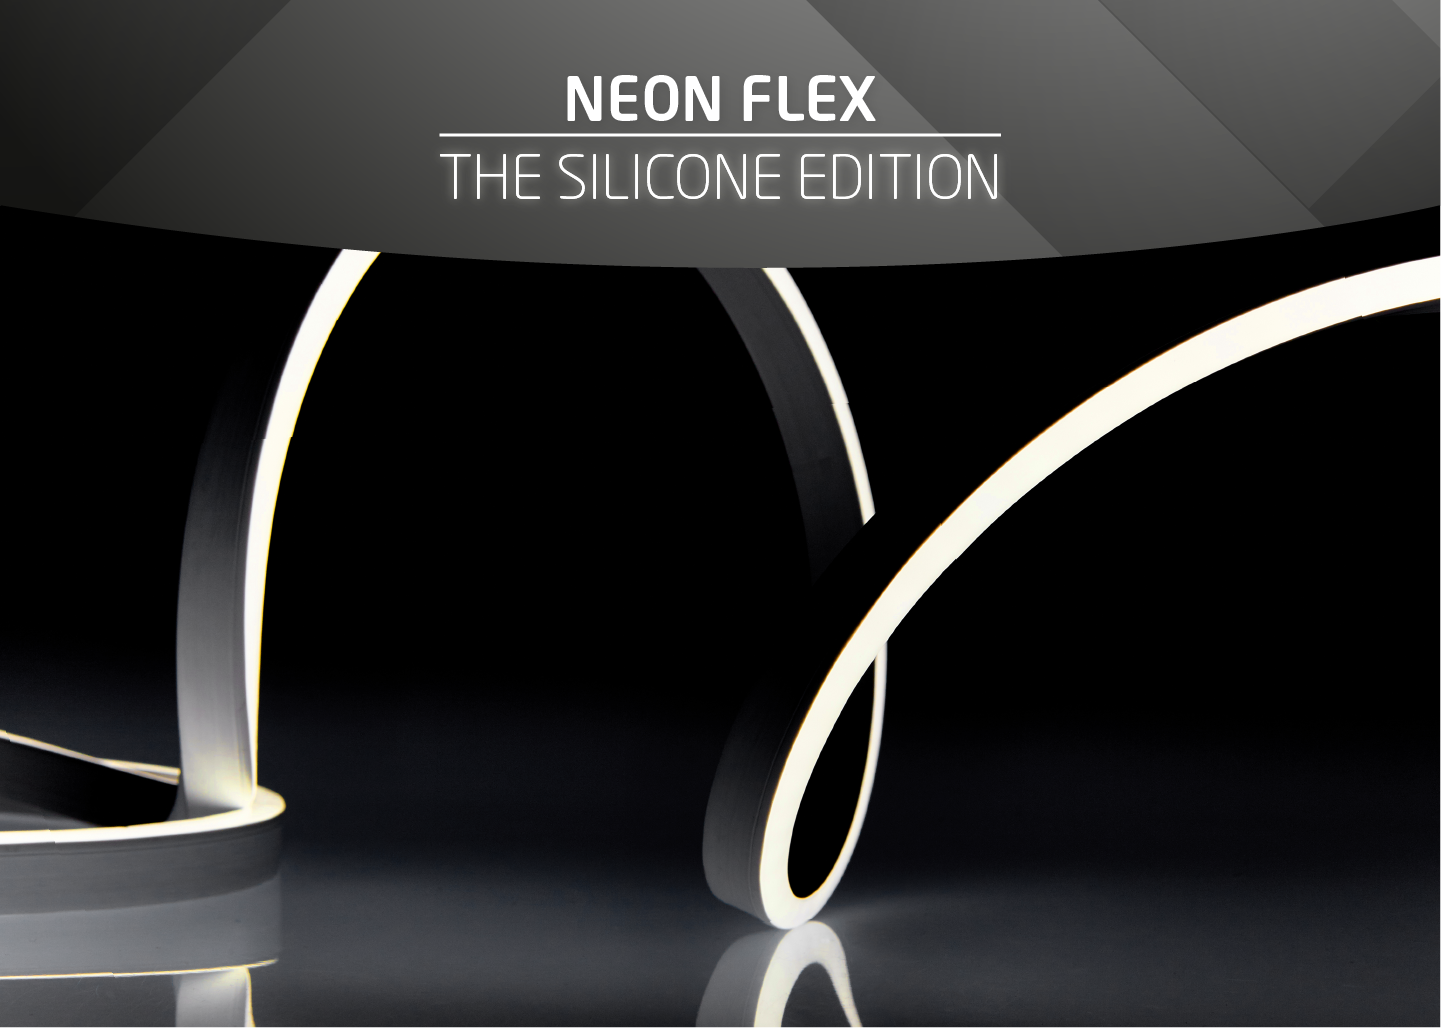 Neon Flex - The Silicone Edition